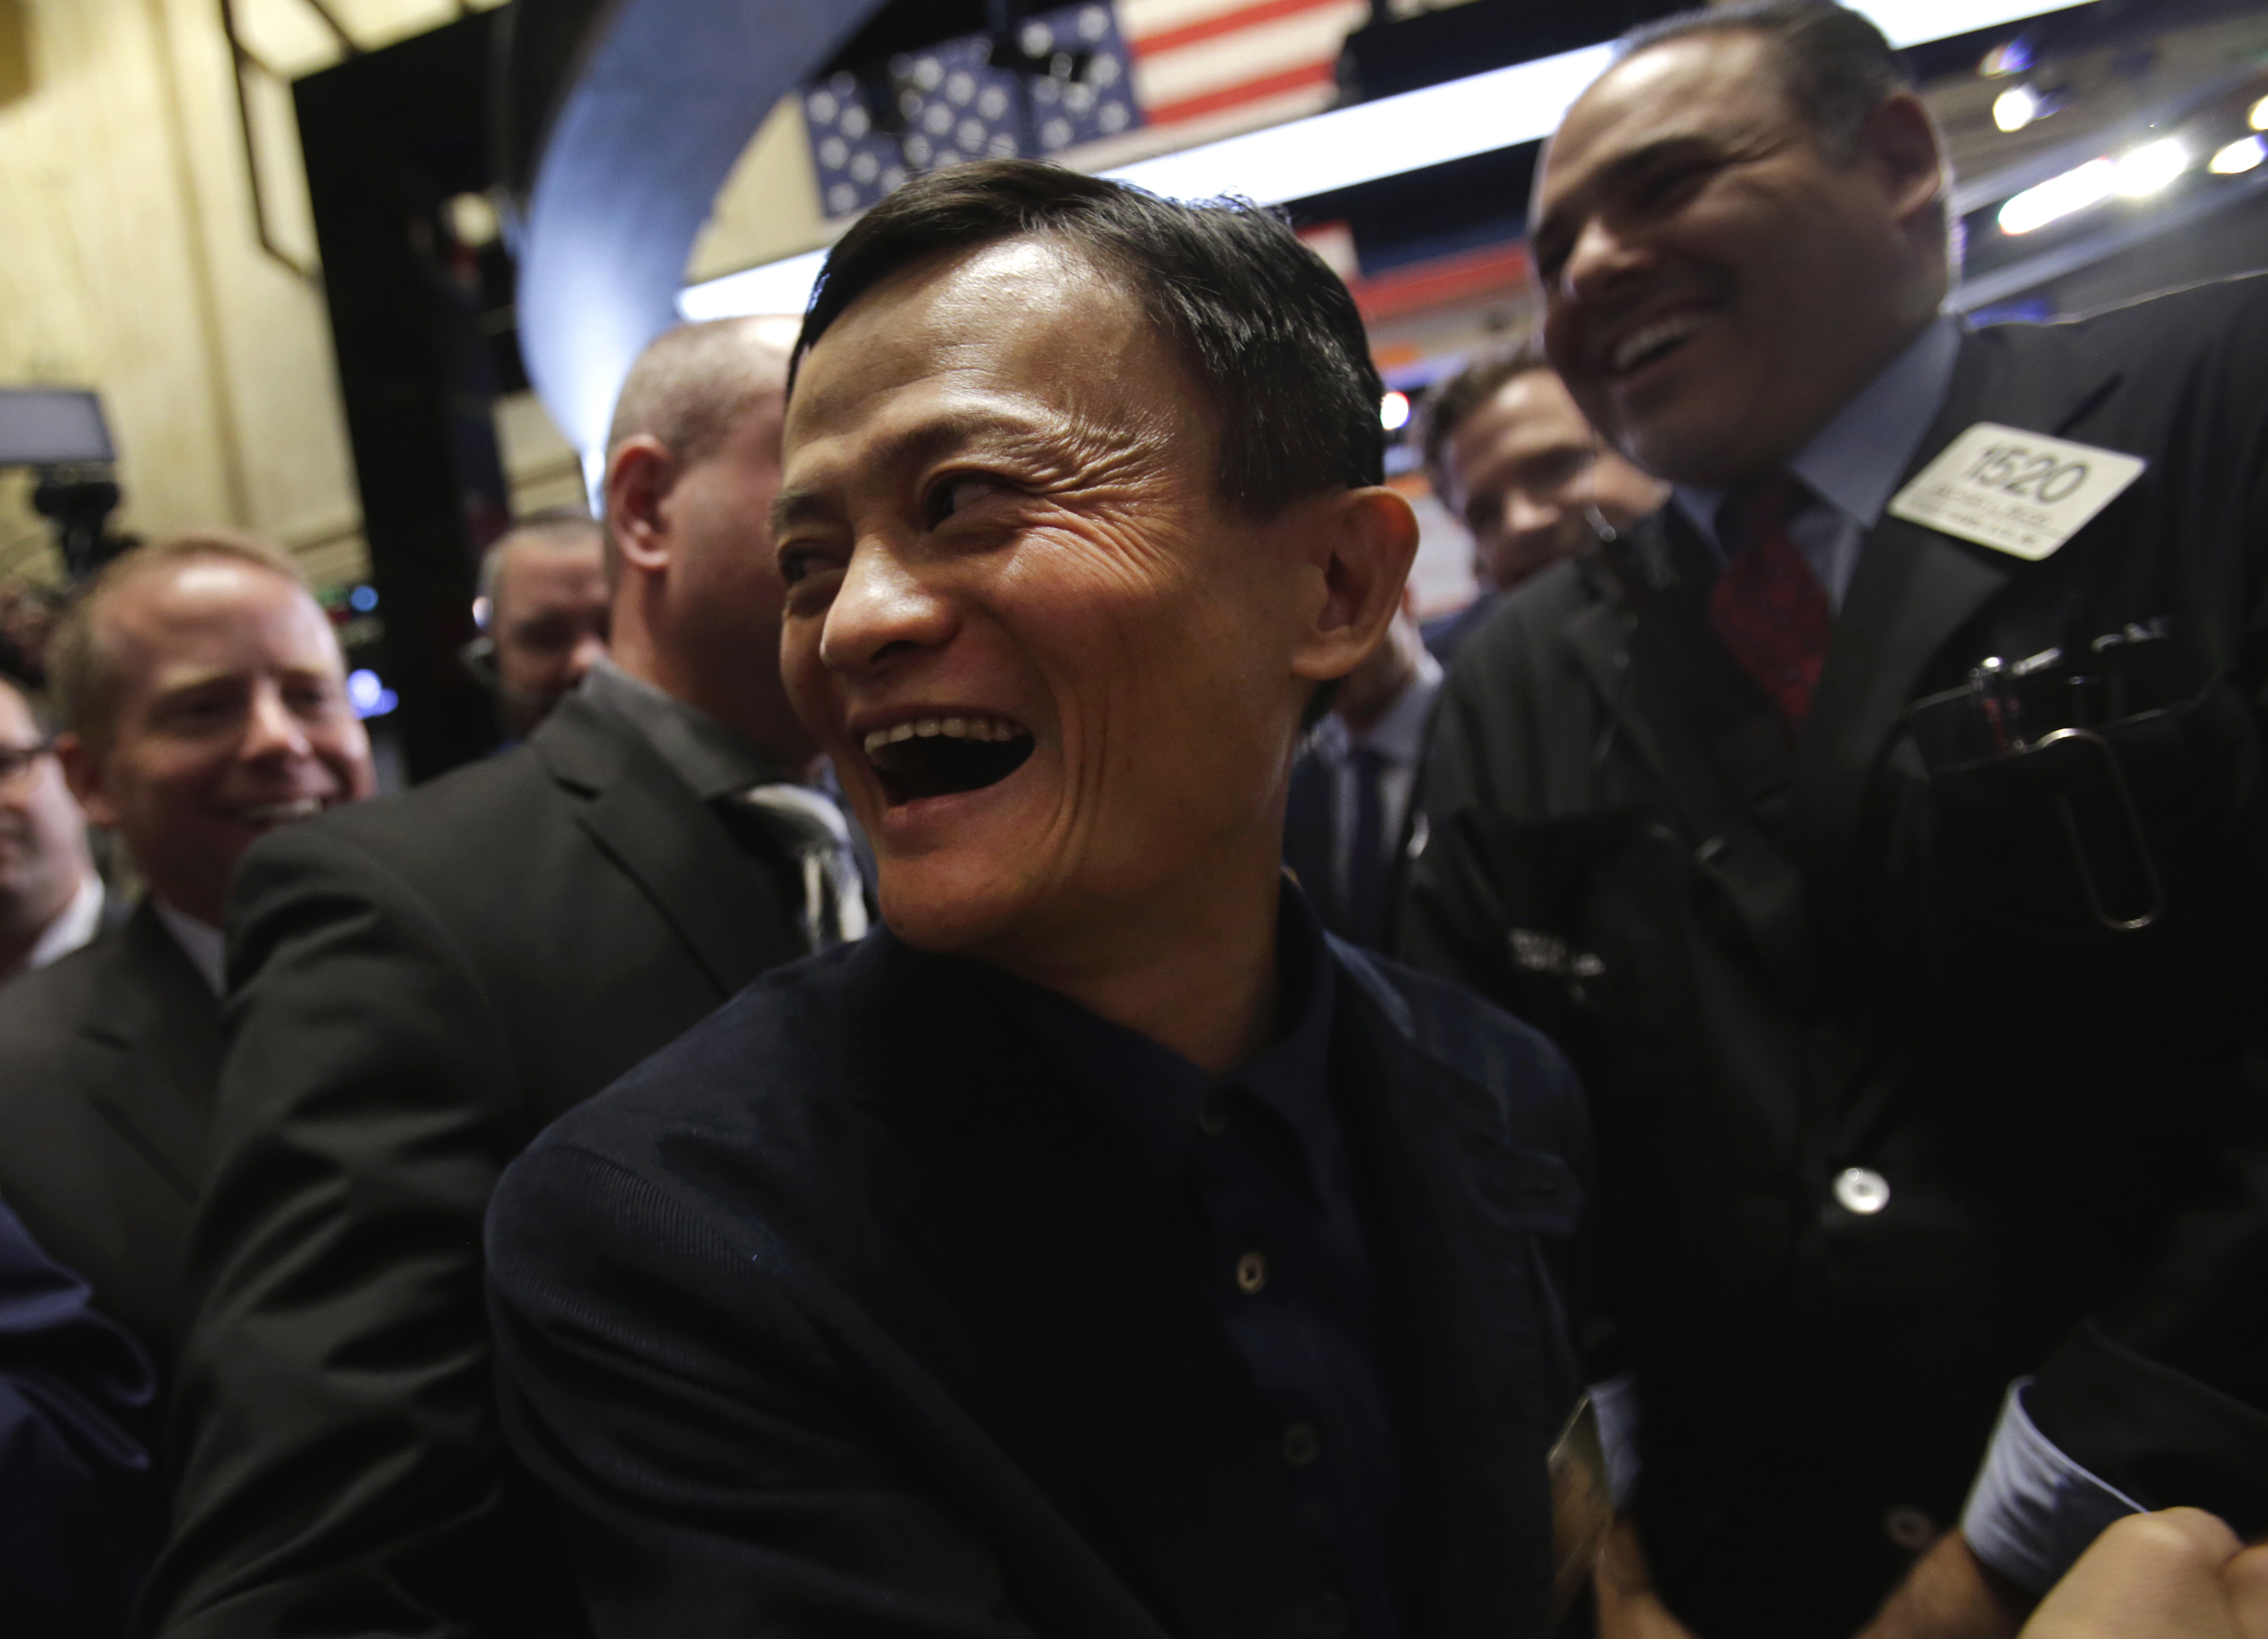 Billionaire Jack Ma, chairman of Alibaba Group Holding Ltd., smiles while touring the floor of the New York Stock Exchange (NYSE) in New York, U.S., on Friday, Sept. 19, 2014.